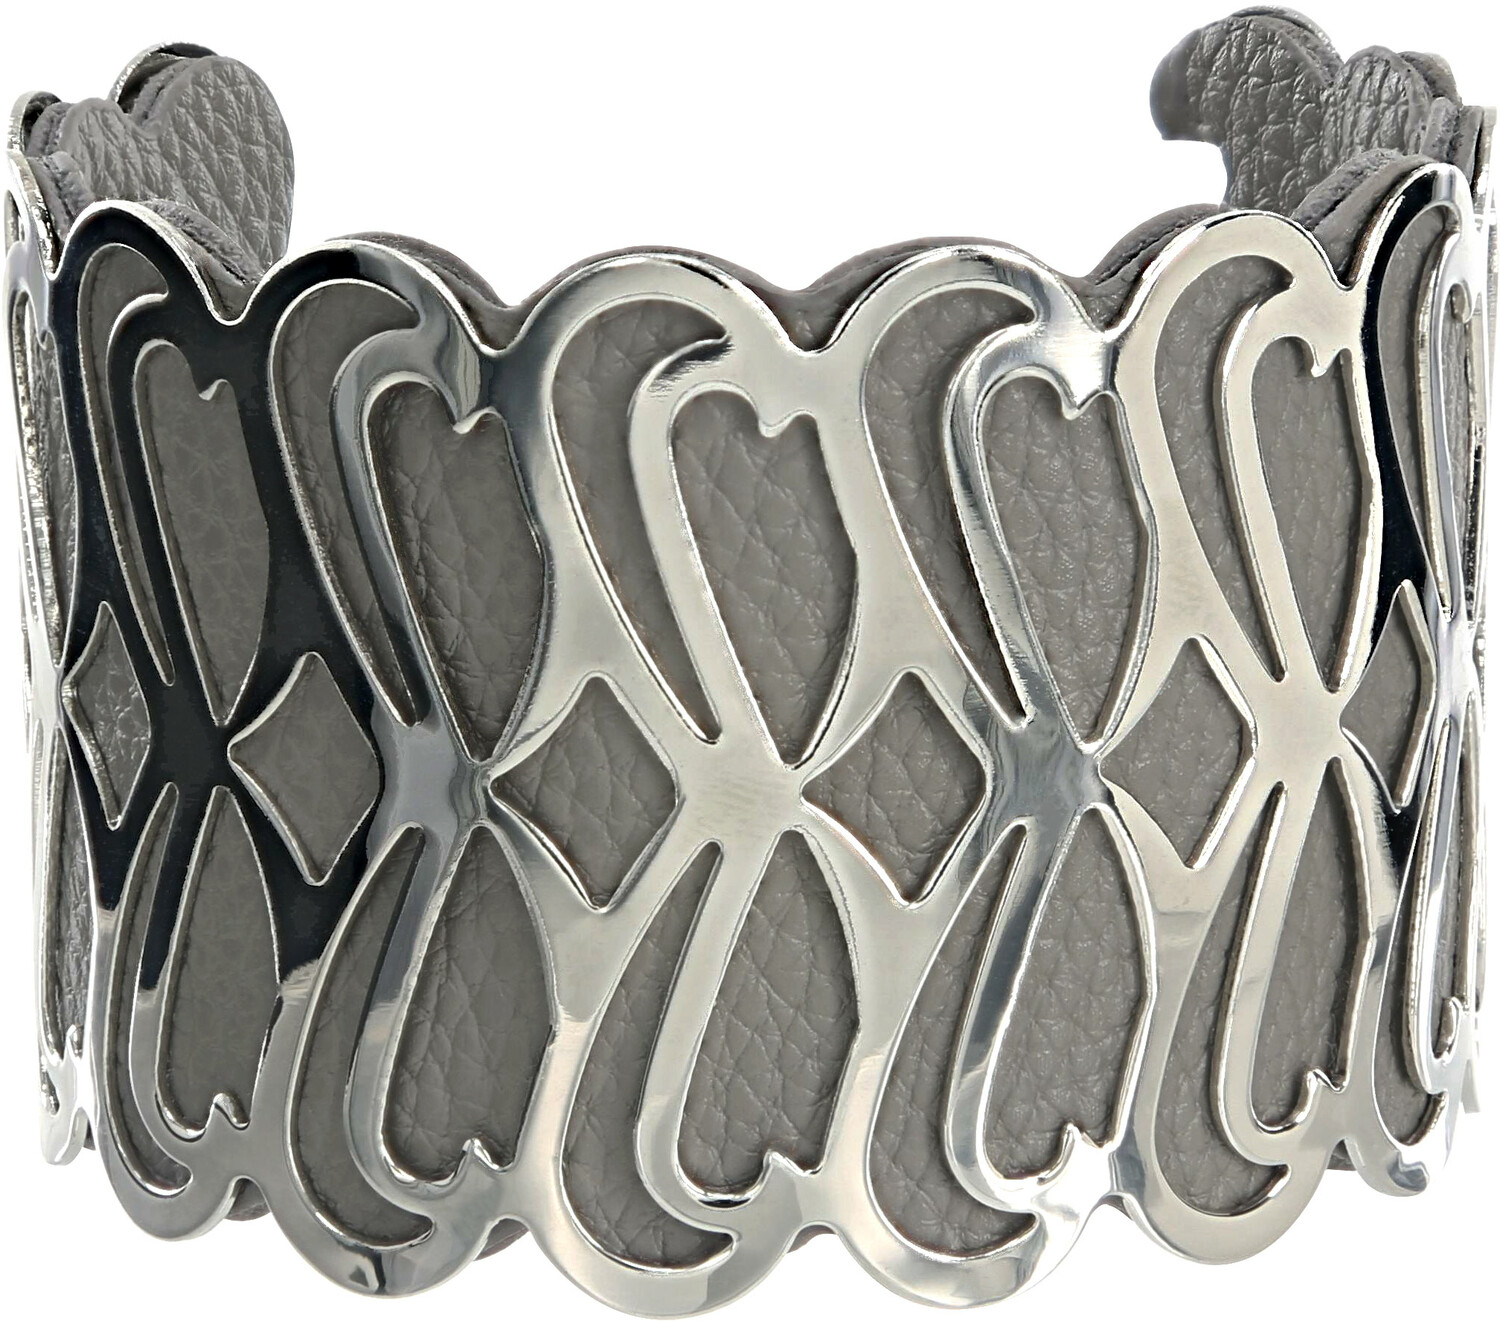 "Silver & Gray by H2Z Filigree Jewelry - Silver & Gray - 2"" Infinity Cuff Bracelet"